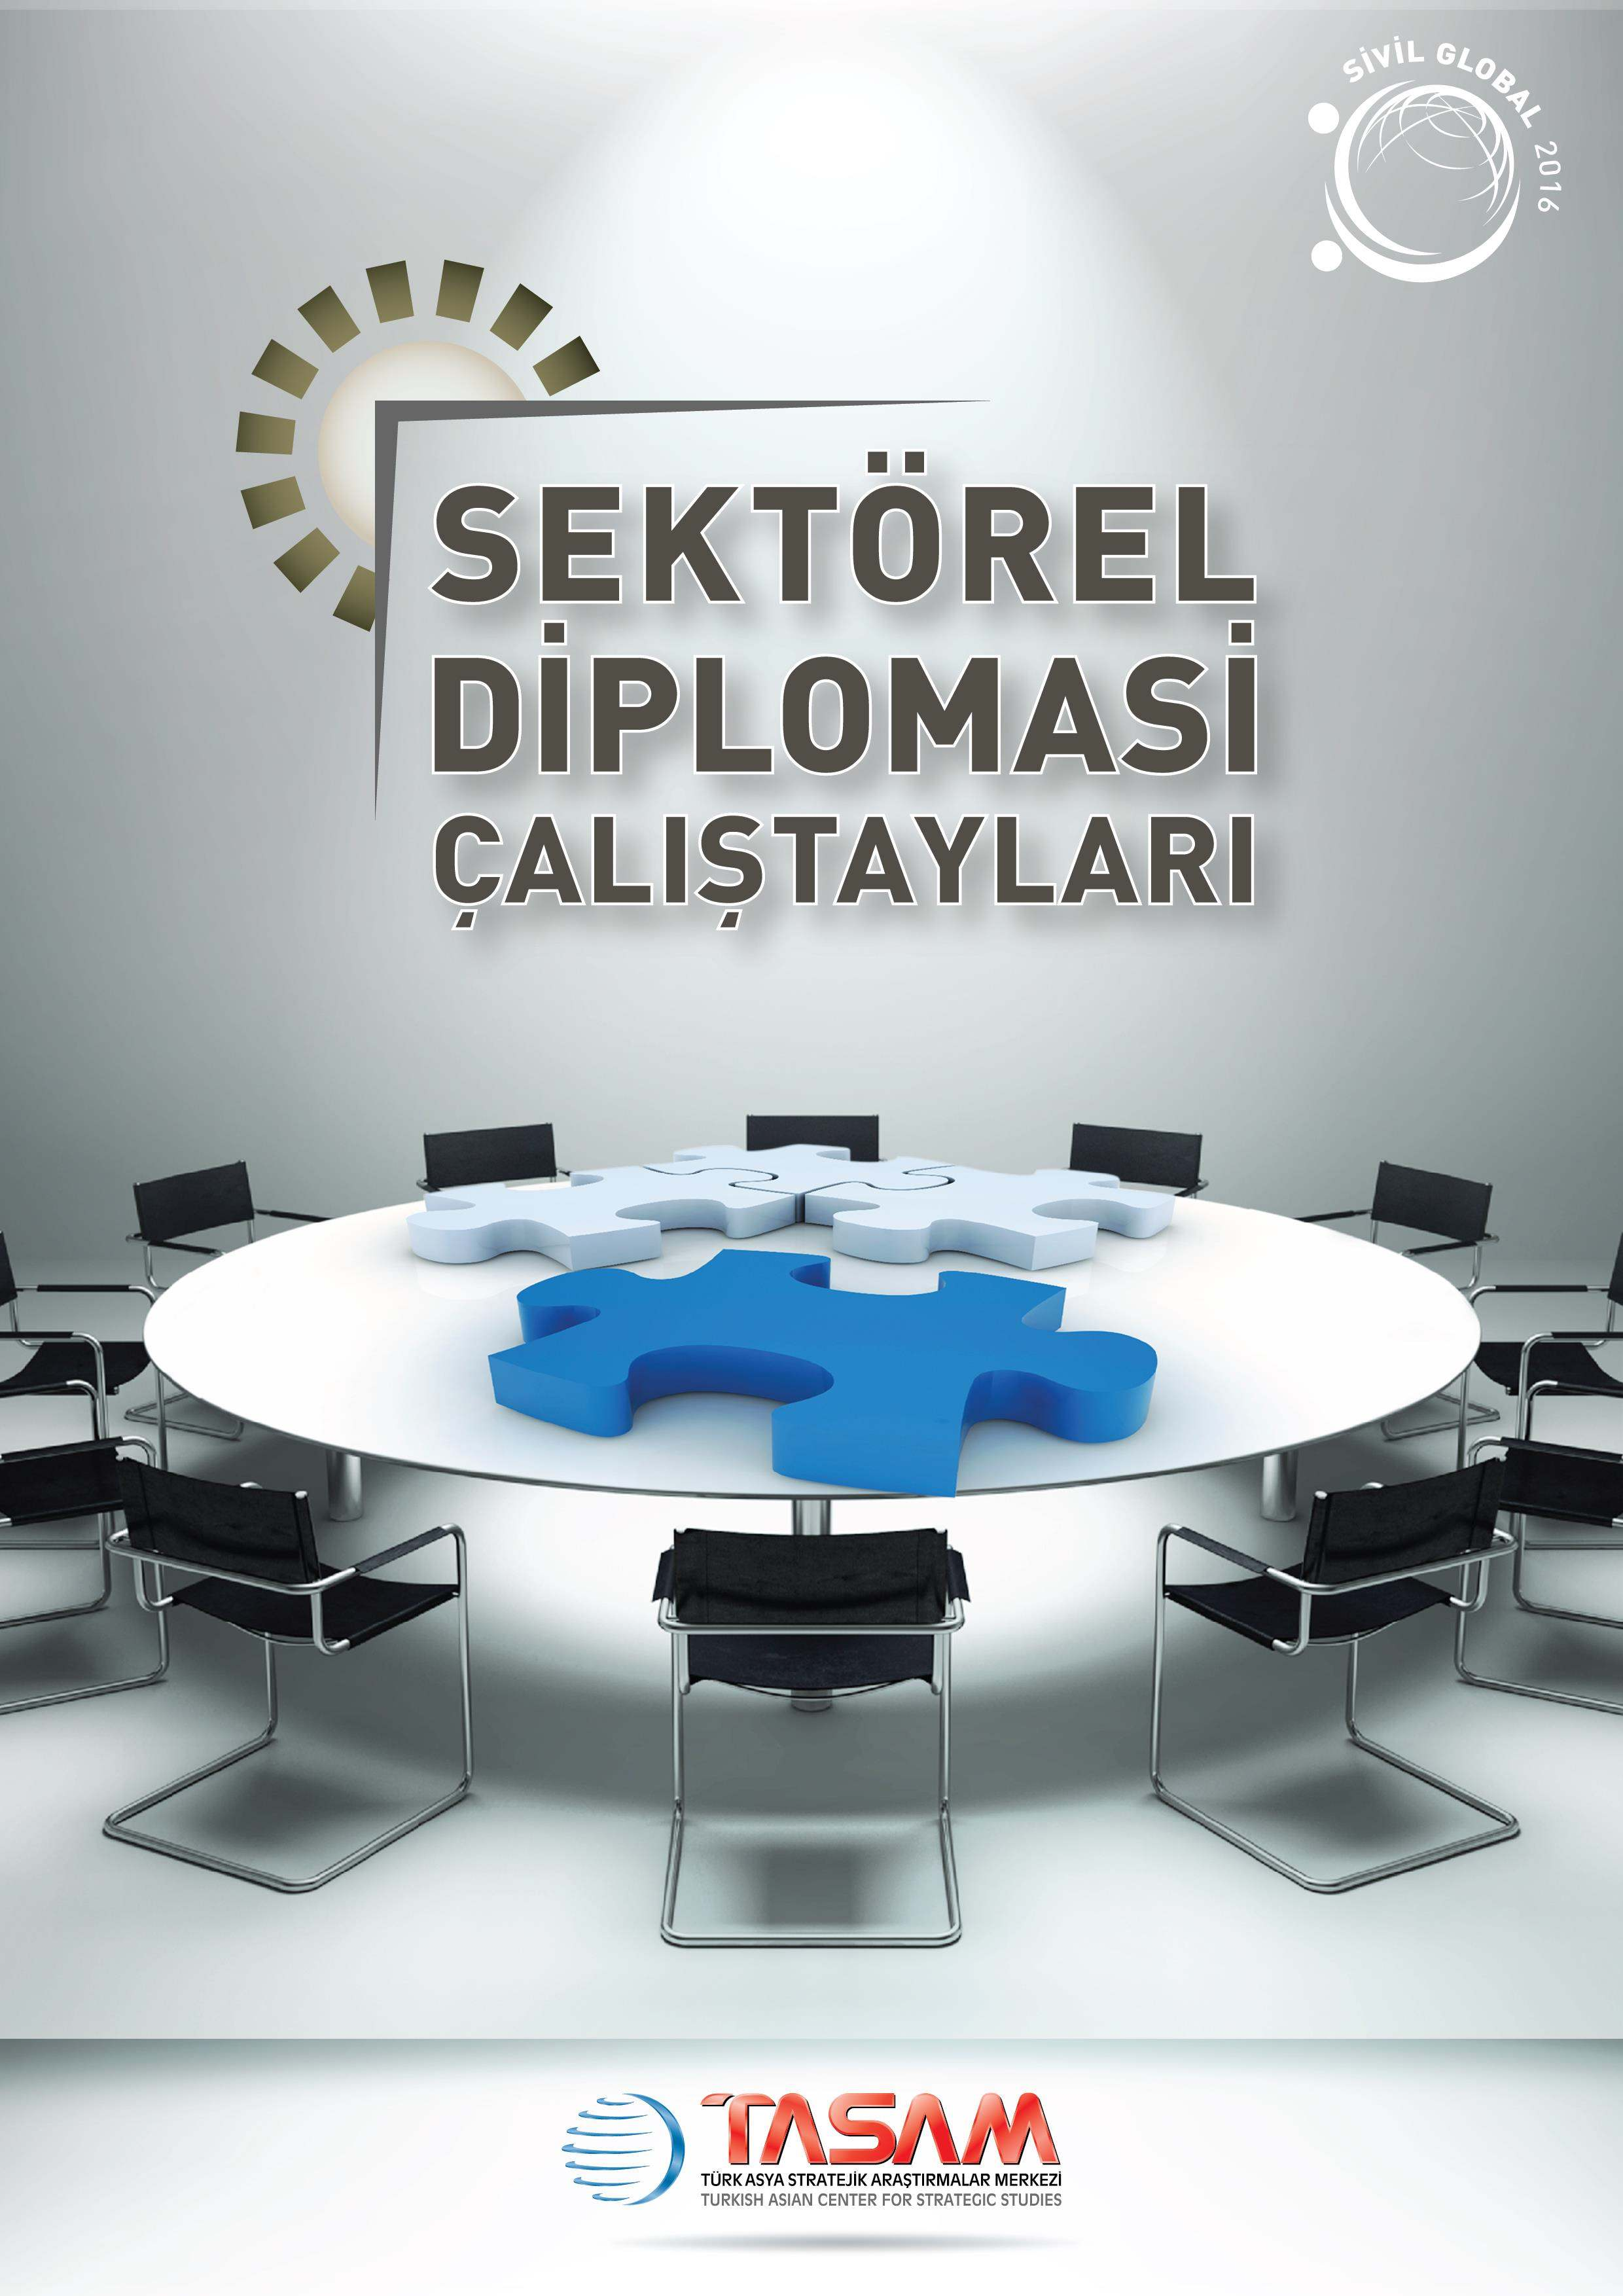 Sectorial Diplomacy Workshops